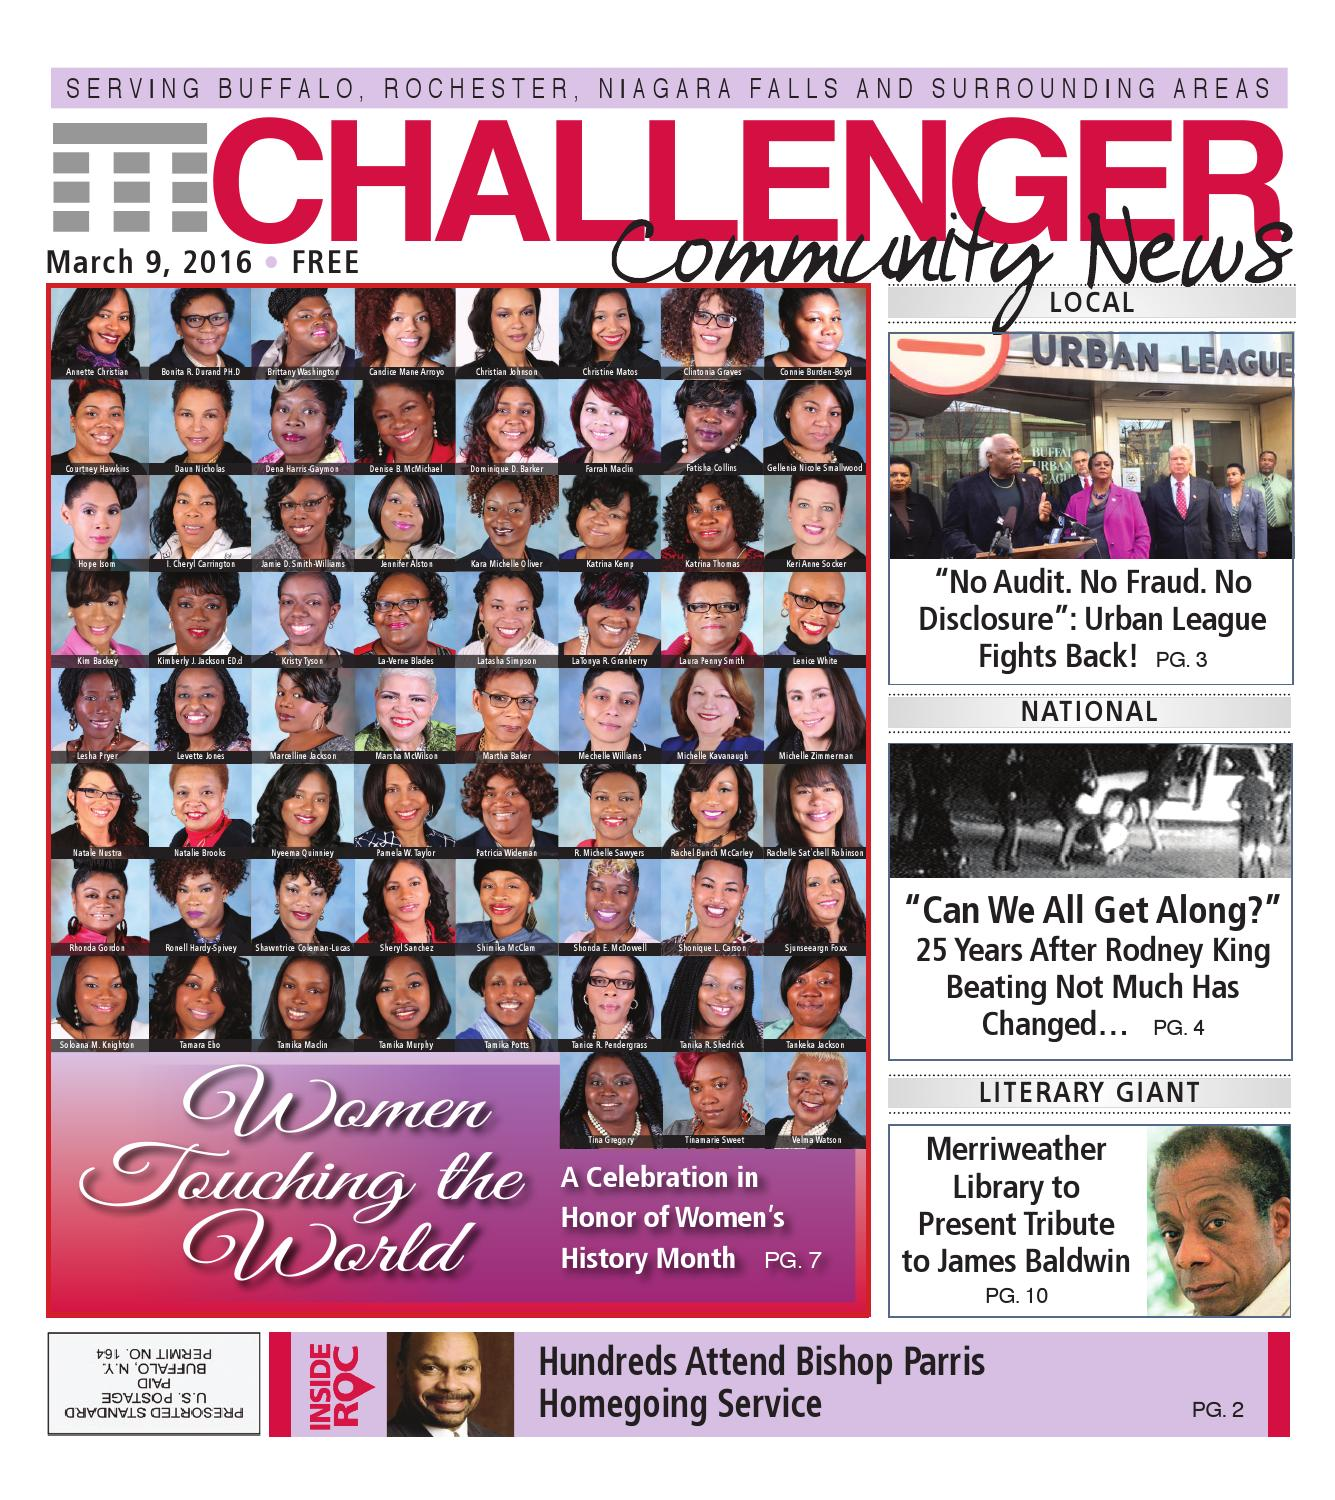 Ina Mae Spivey Delightful challenger community news march 9, 2016the challenger